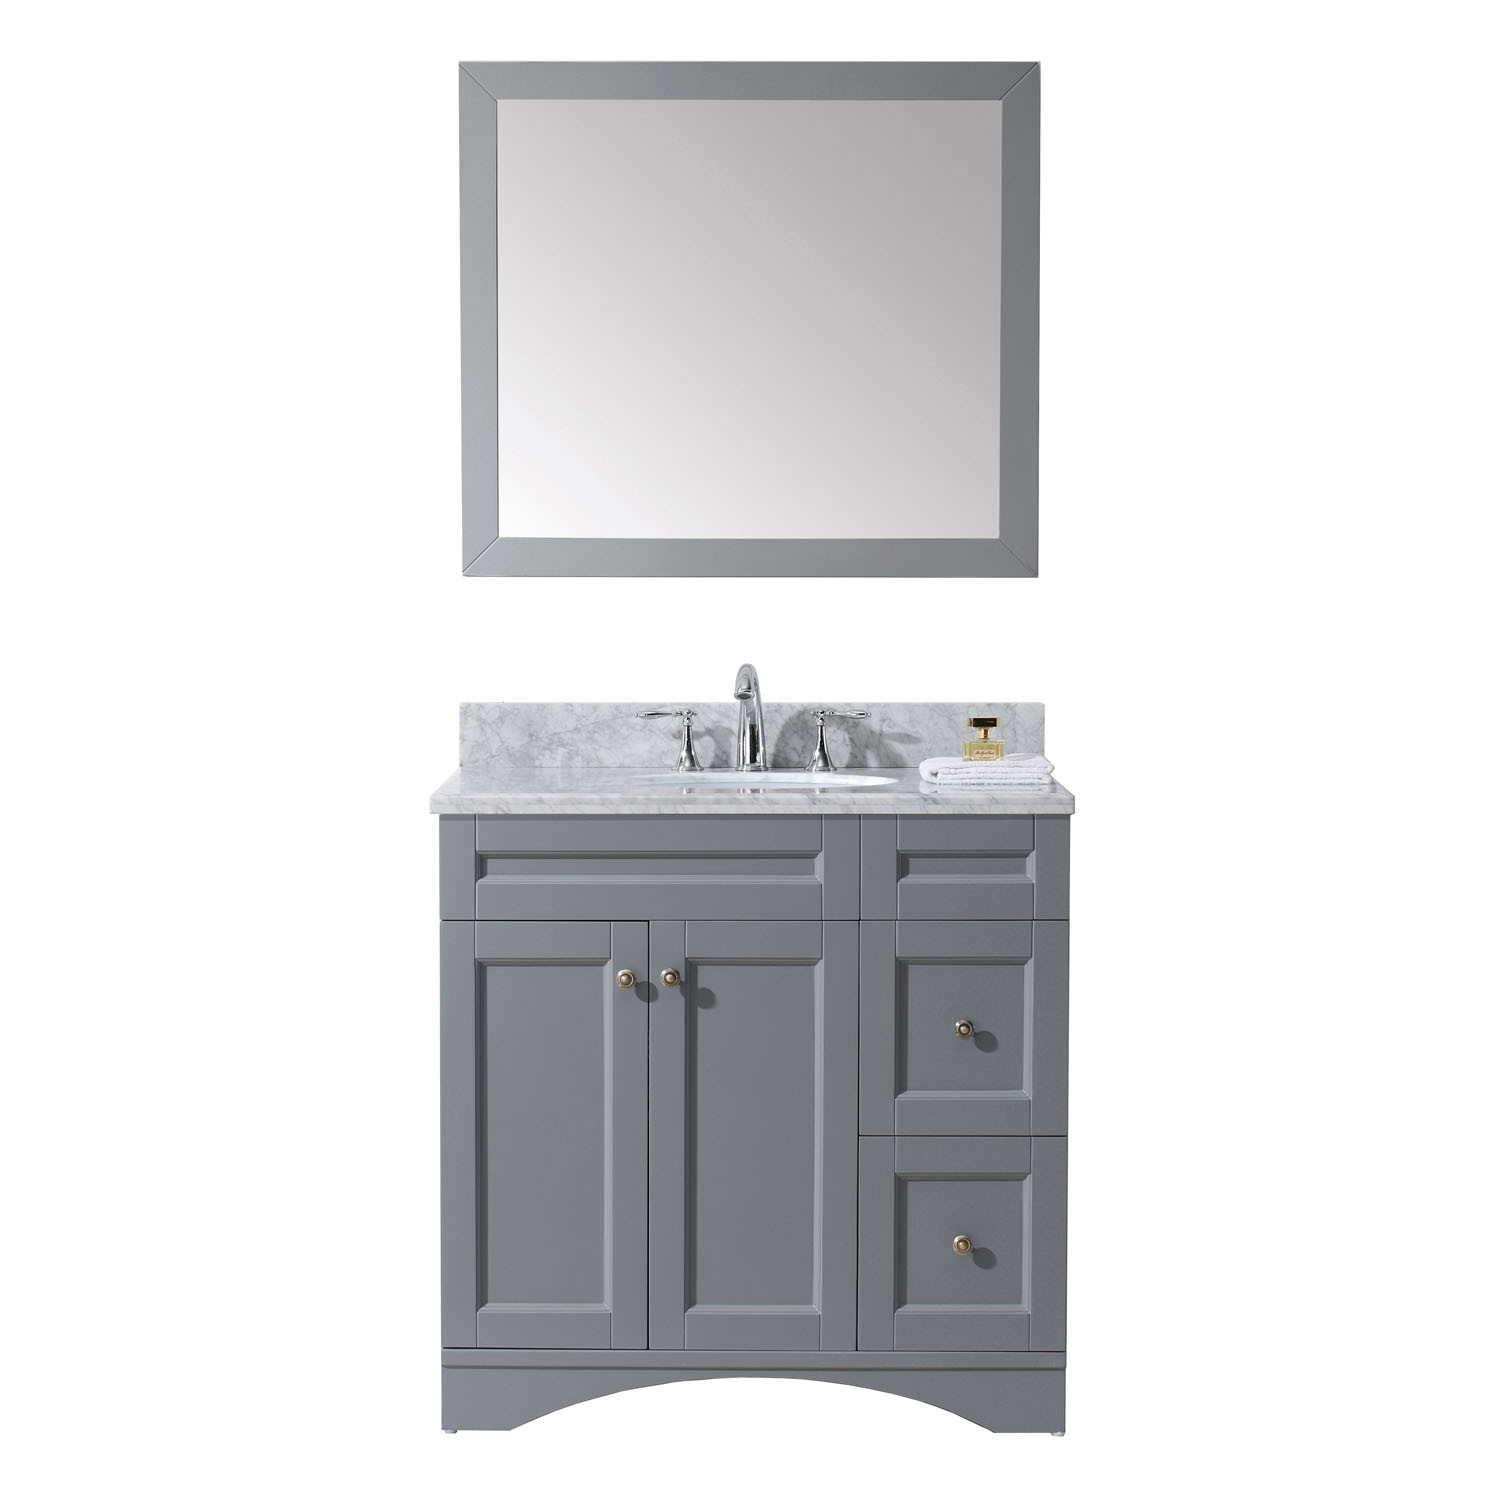 Virtu ES-32036-WMRO-GR Elise 36 Inch Single Bathroom Vanity Set In Grey